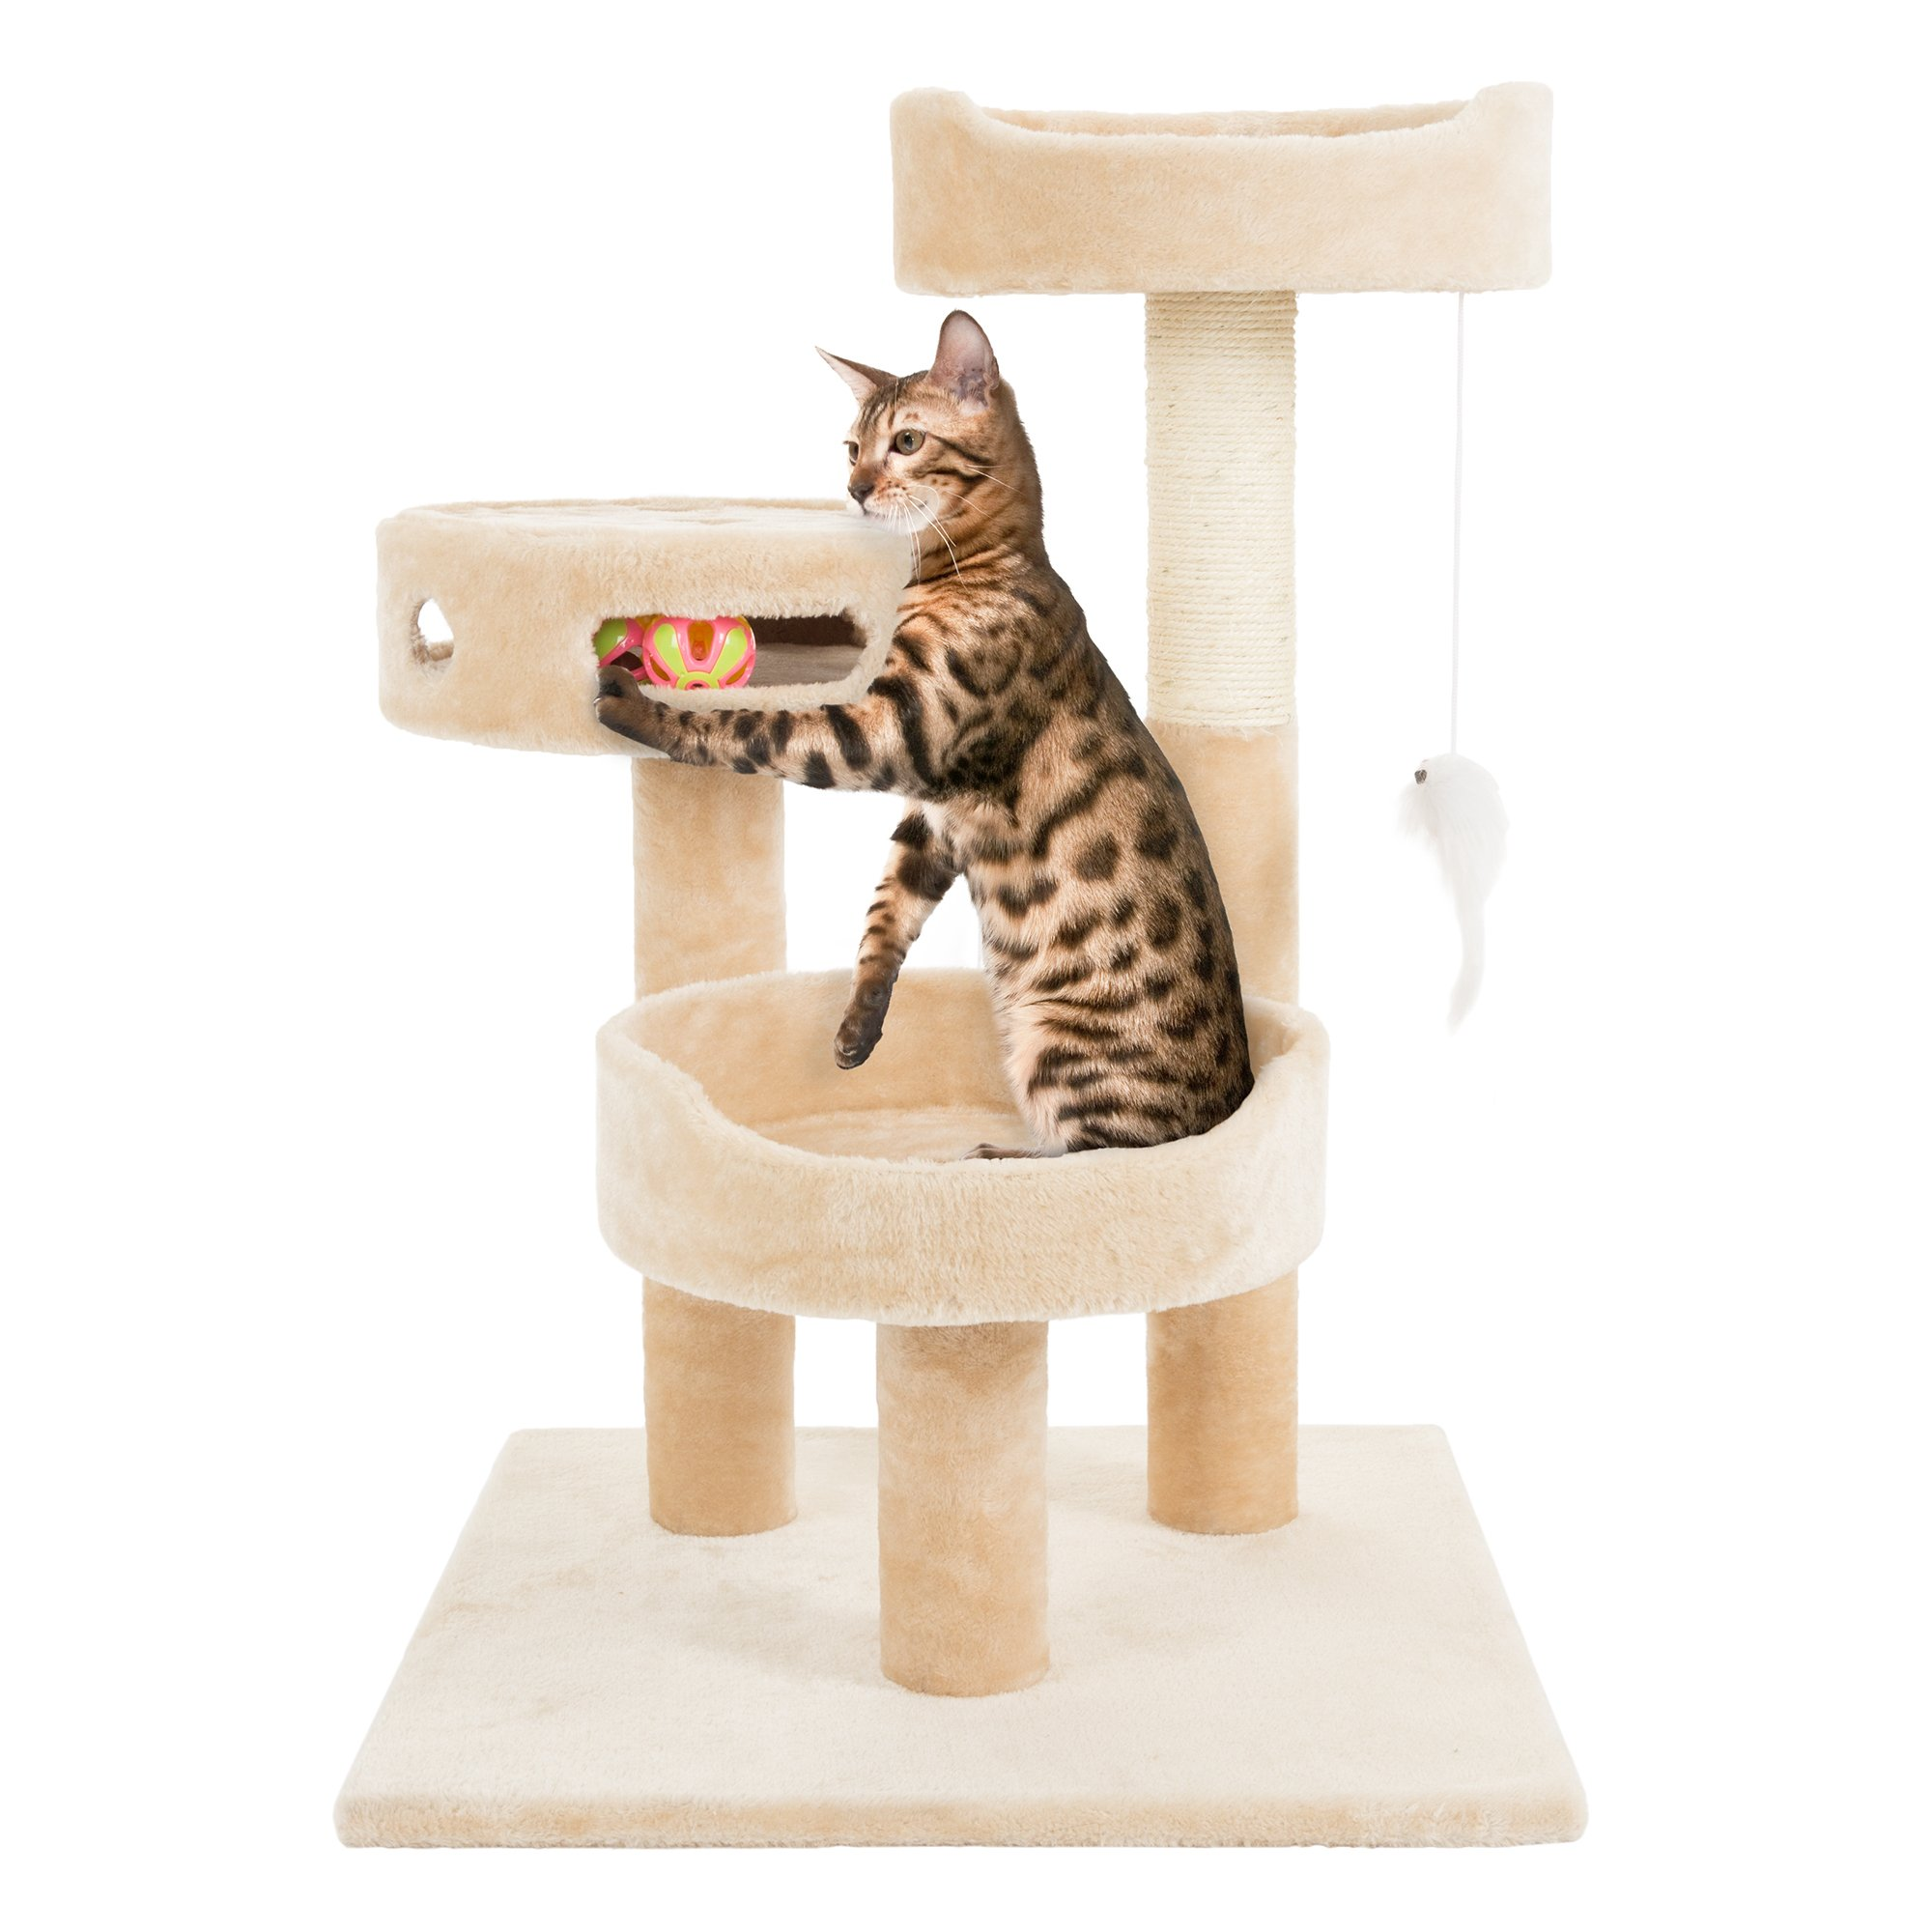 PETMAKER Cat Tree 3 Tier 2 Hanging Toys A 3 Ball Play Area and Scratching Post, 27.5'', Tan by PETMAKER (Image #1)